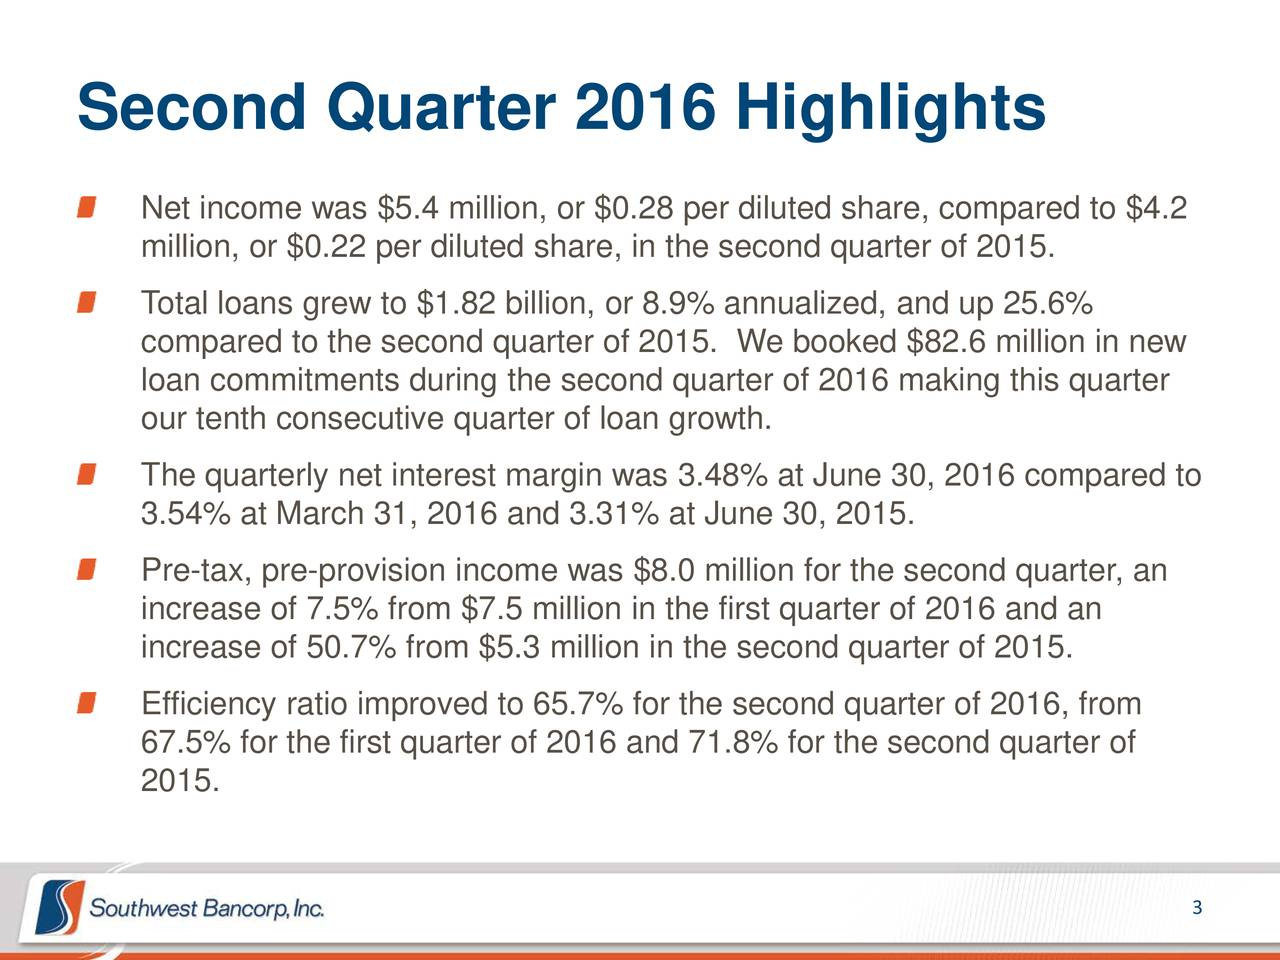 Net income was $5.4 million, or $0.28 per diluted share, compared to $4.2 million, or $0.22 per diluted share, in the second quarter of 2015. Total loans grew to $1.82 billion, or 8.9% annualized, and up 25.6% compared to the second quarter of 2015. We booked $82.6 million in new loan commitments during the second quarter of 2016 making this quarter our tenth consecutive quarter of loan growth. The quarterly net interest margin was 3.48% at June 30, 2016 compared to 3.54% at March 31, 2016 and 3.31% at June 30, 2015. Pre-tax, pre-provision income was $8.0 million for the second quarter, an increase of 7.5% from $7.5 million in the first quarter of 2016 and an increase of 50.7% from $5.3 million in the second quarter of 2015. Efficiency ratio improved to 65.7% for the second quarter of 2016, from 67.5% for the first quarter of 2016 and 71.8% for the second quarter of 2015. 3